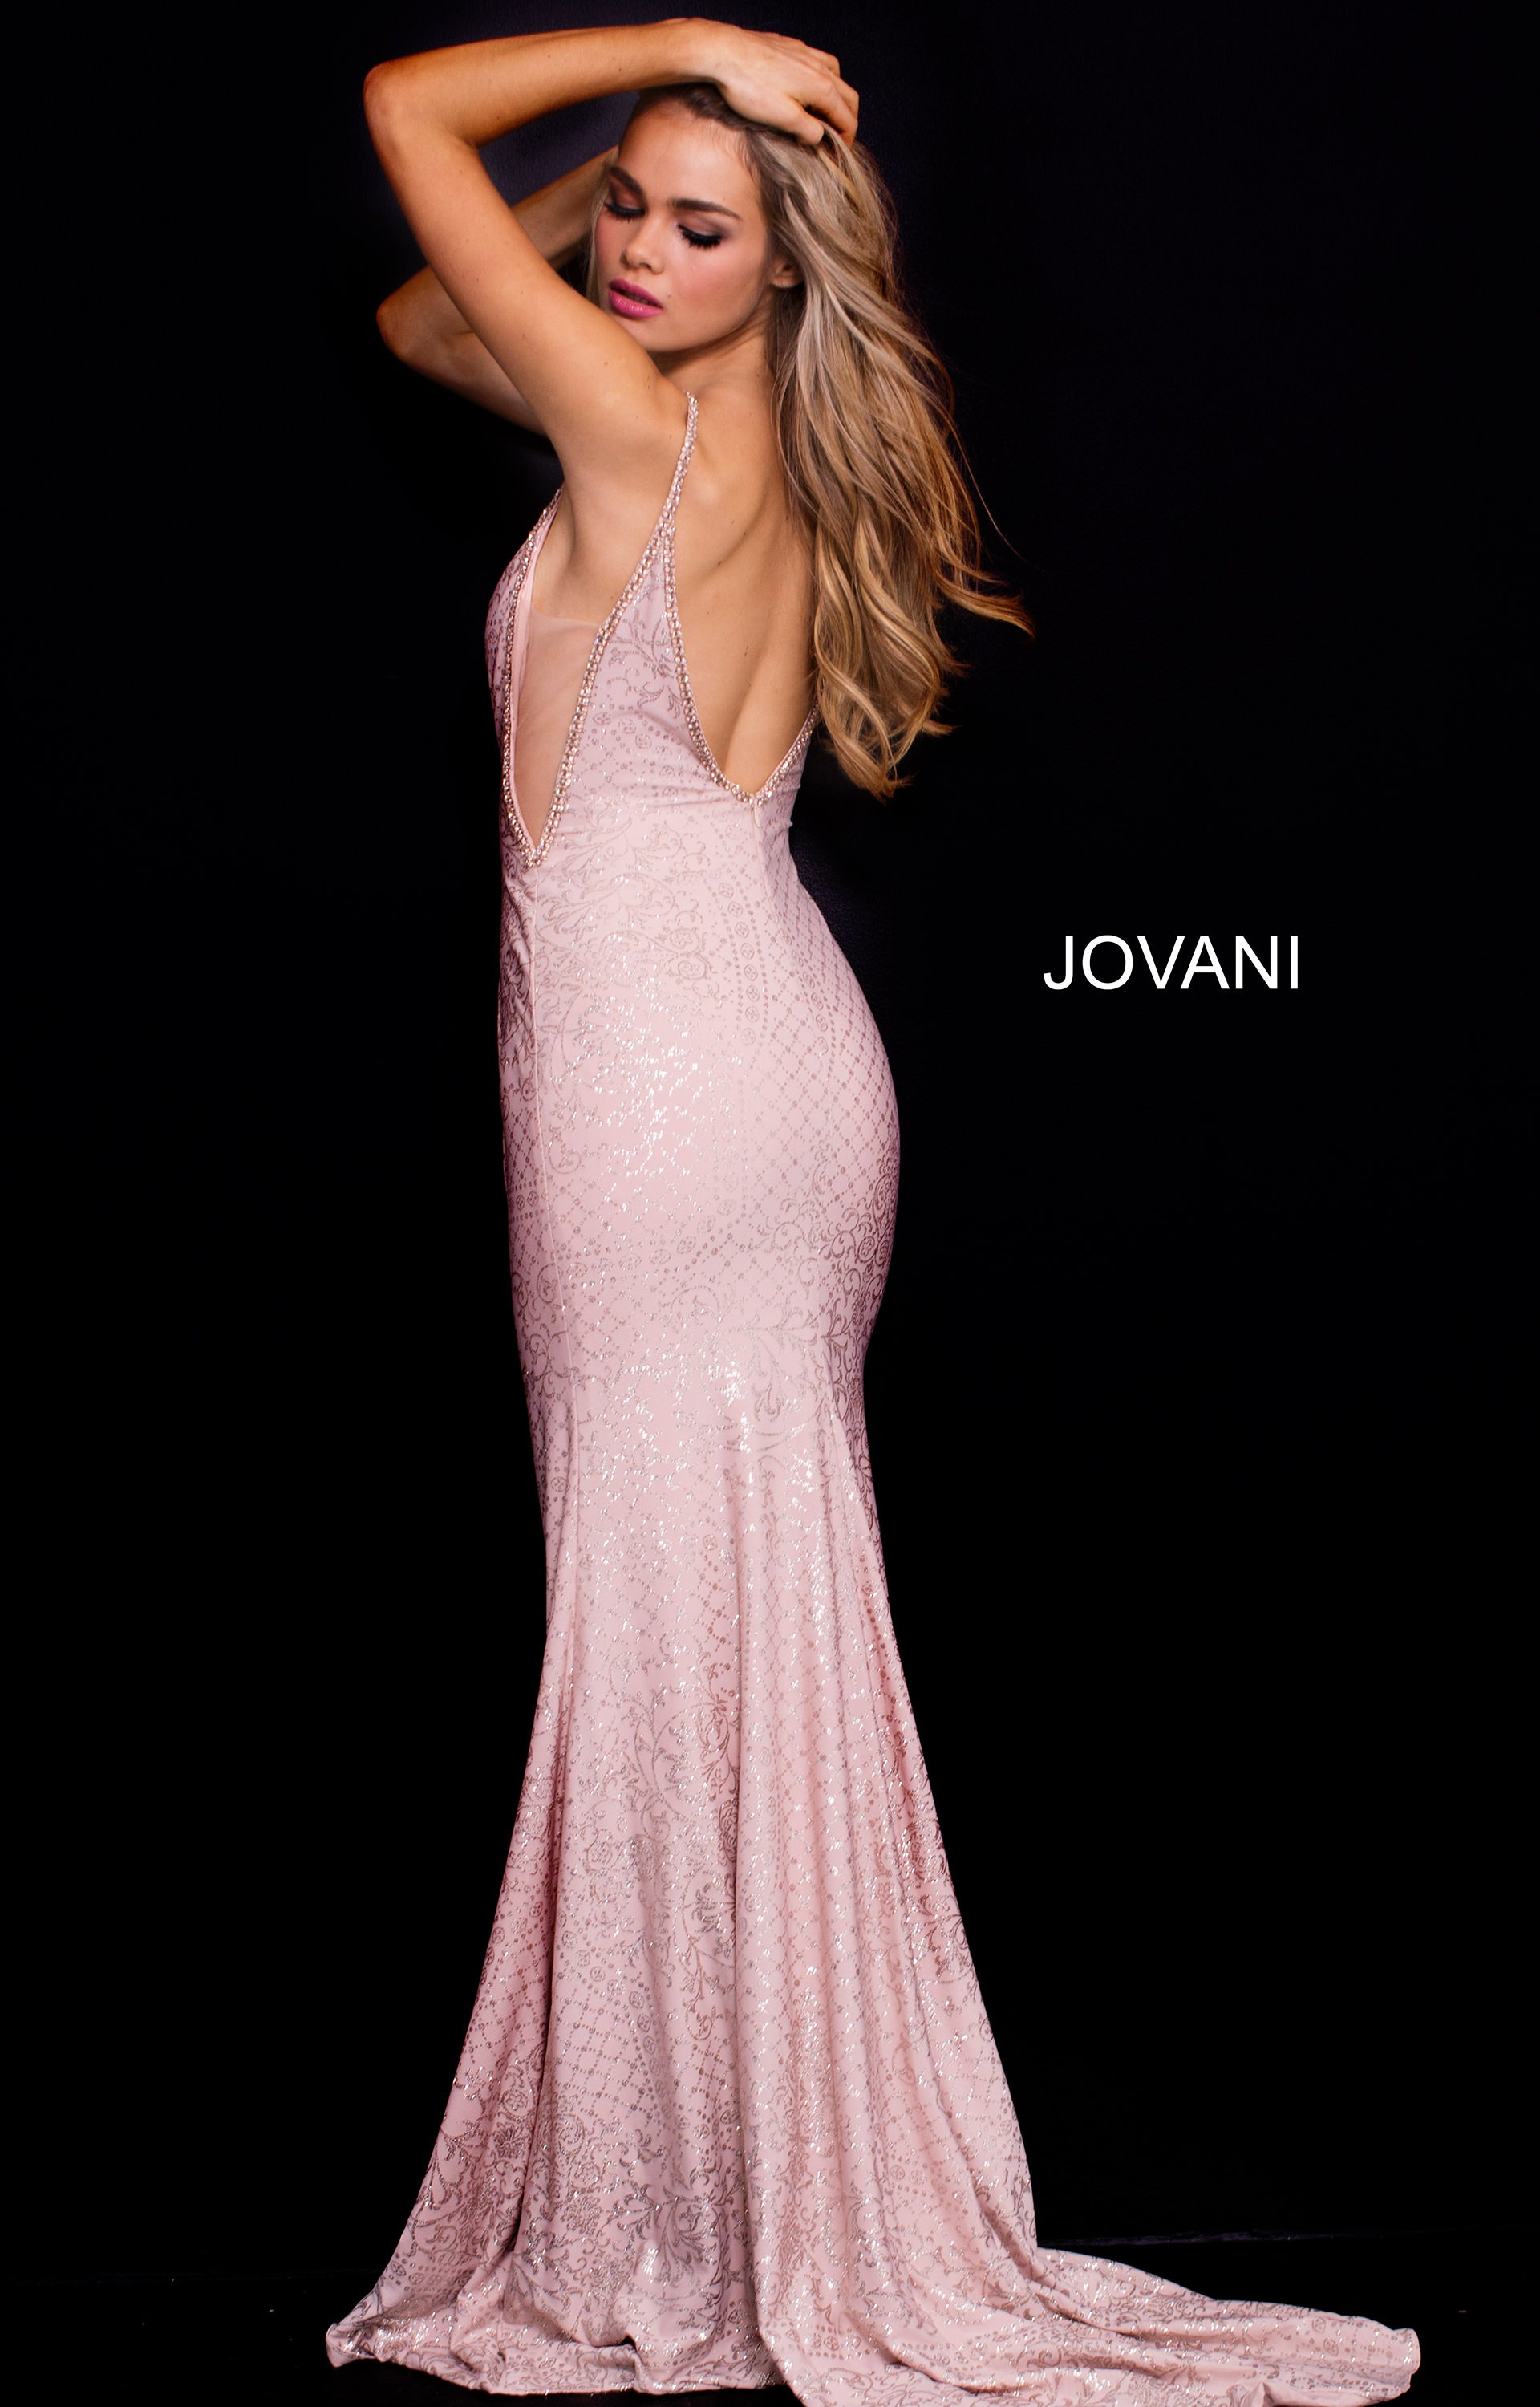 c1210e1d4065 Jovani 57897 - Fitted Embellished Dress with Thin Straps